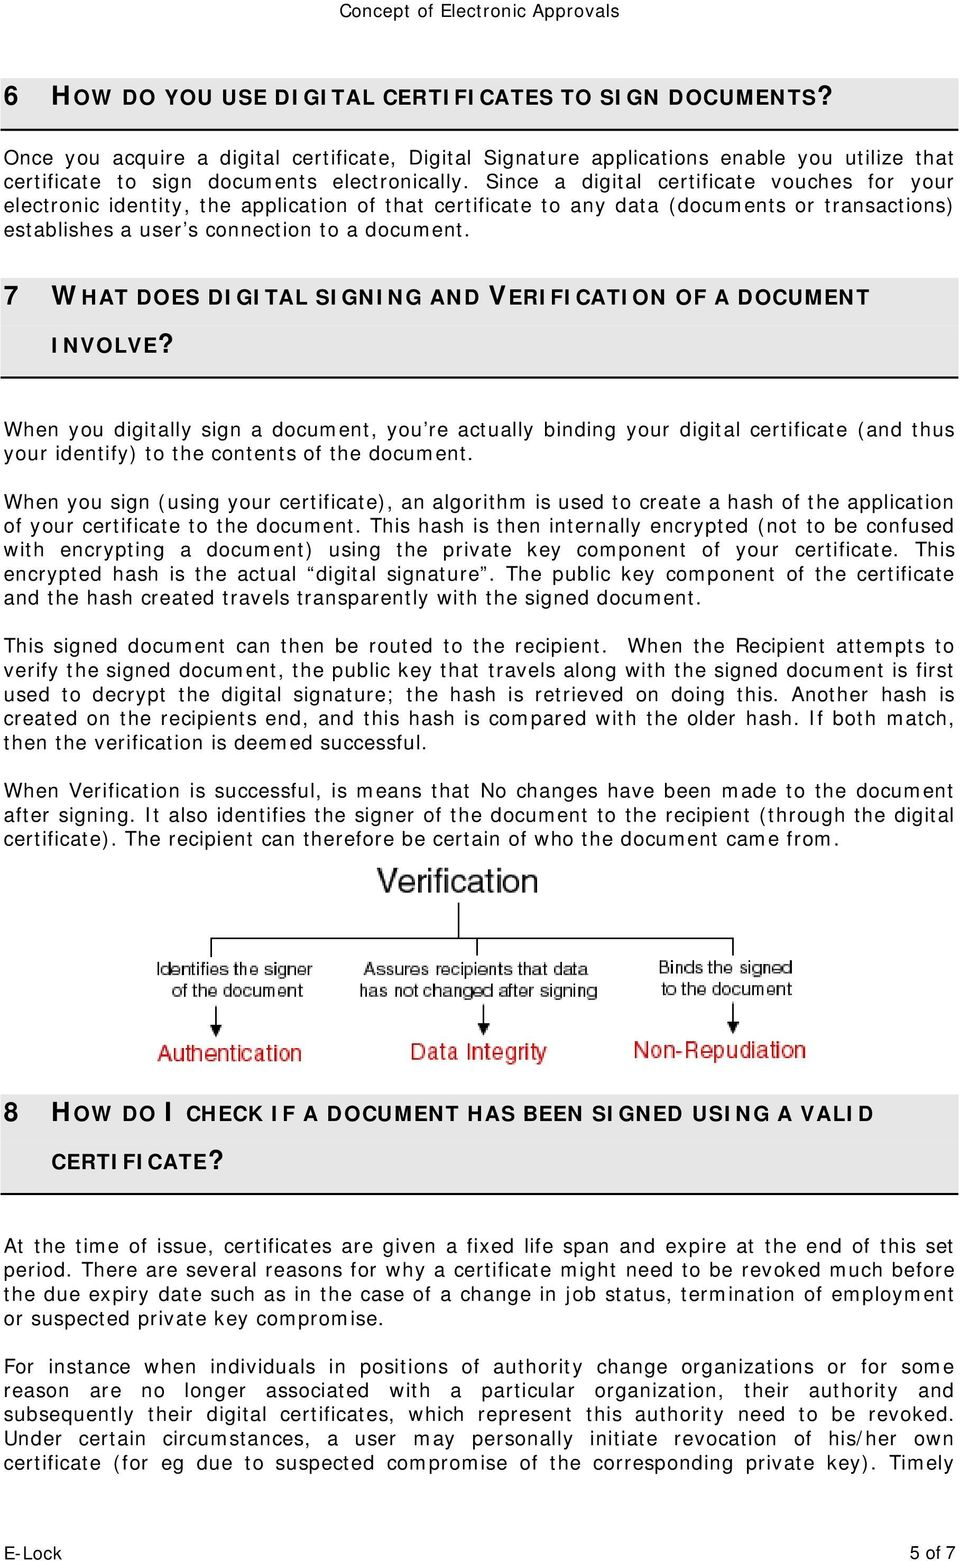 7 WHAT DOES DIGITAL SIGNING AND VERIFICATION OF A DOCUMENT INVOLVE?